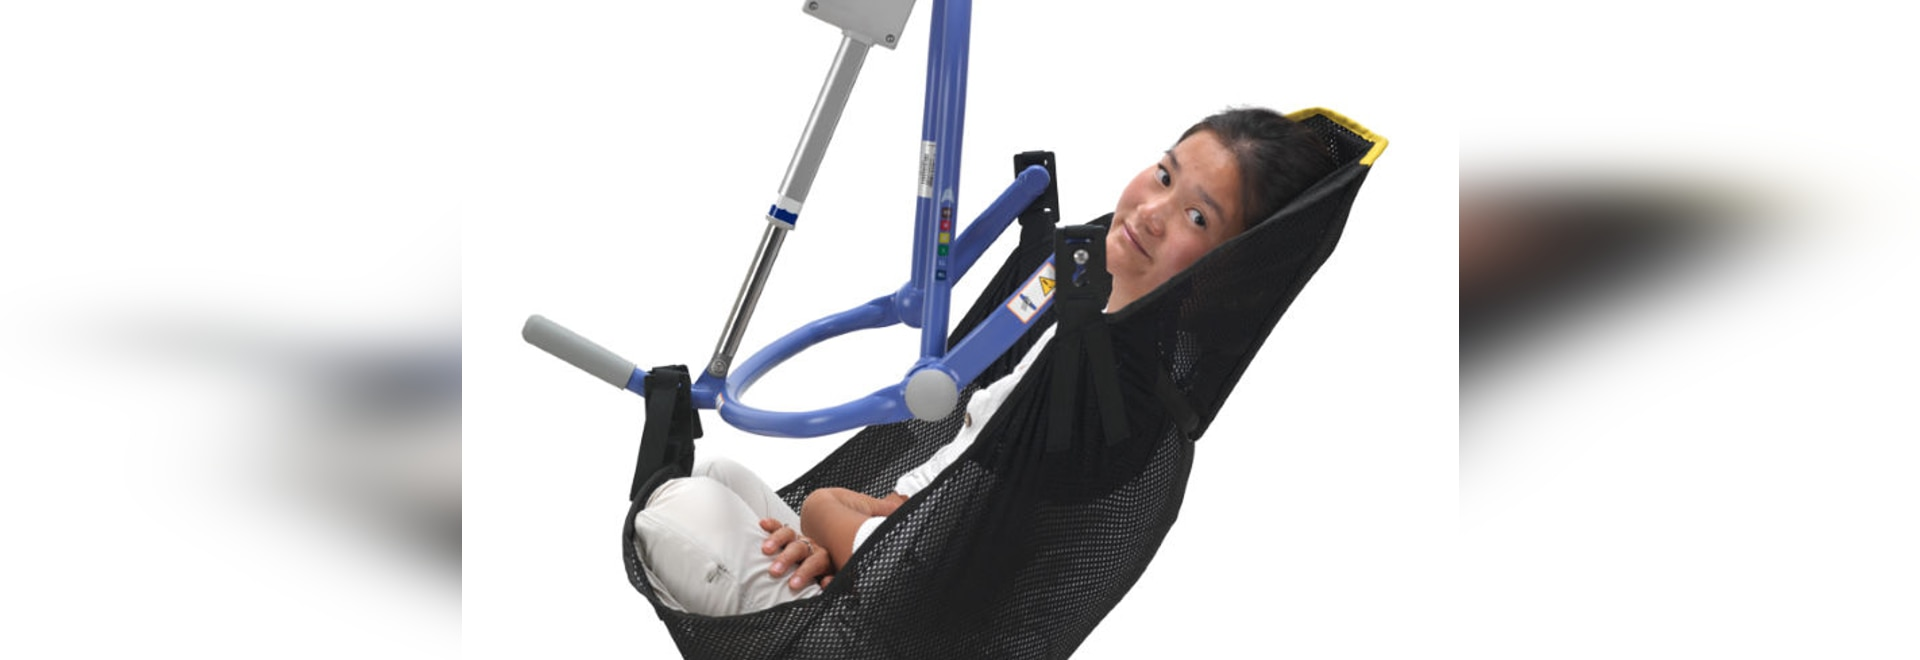 NEW: patient lift sling by ArjoHuntleigh